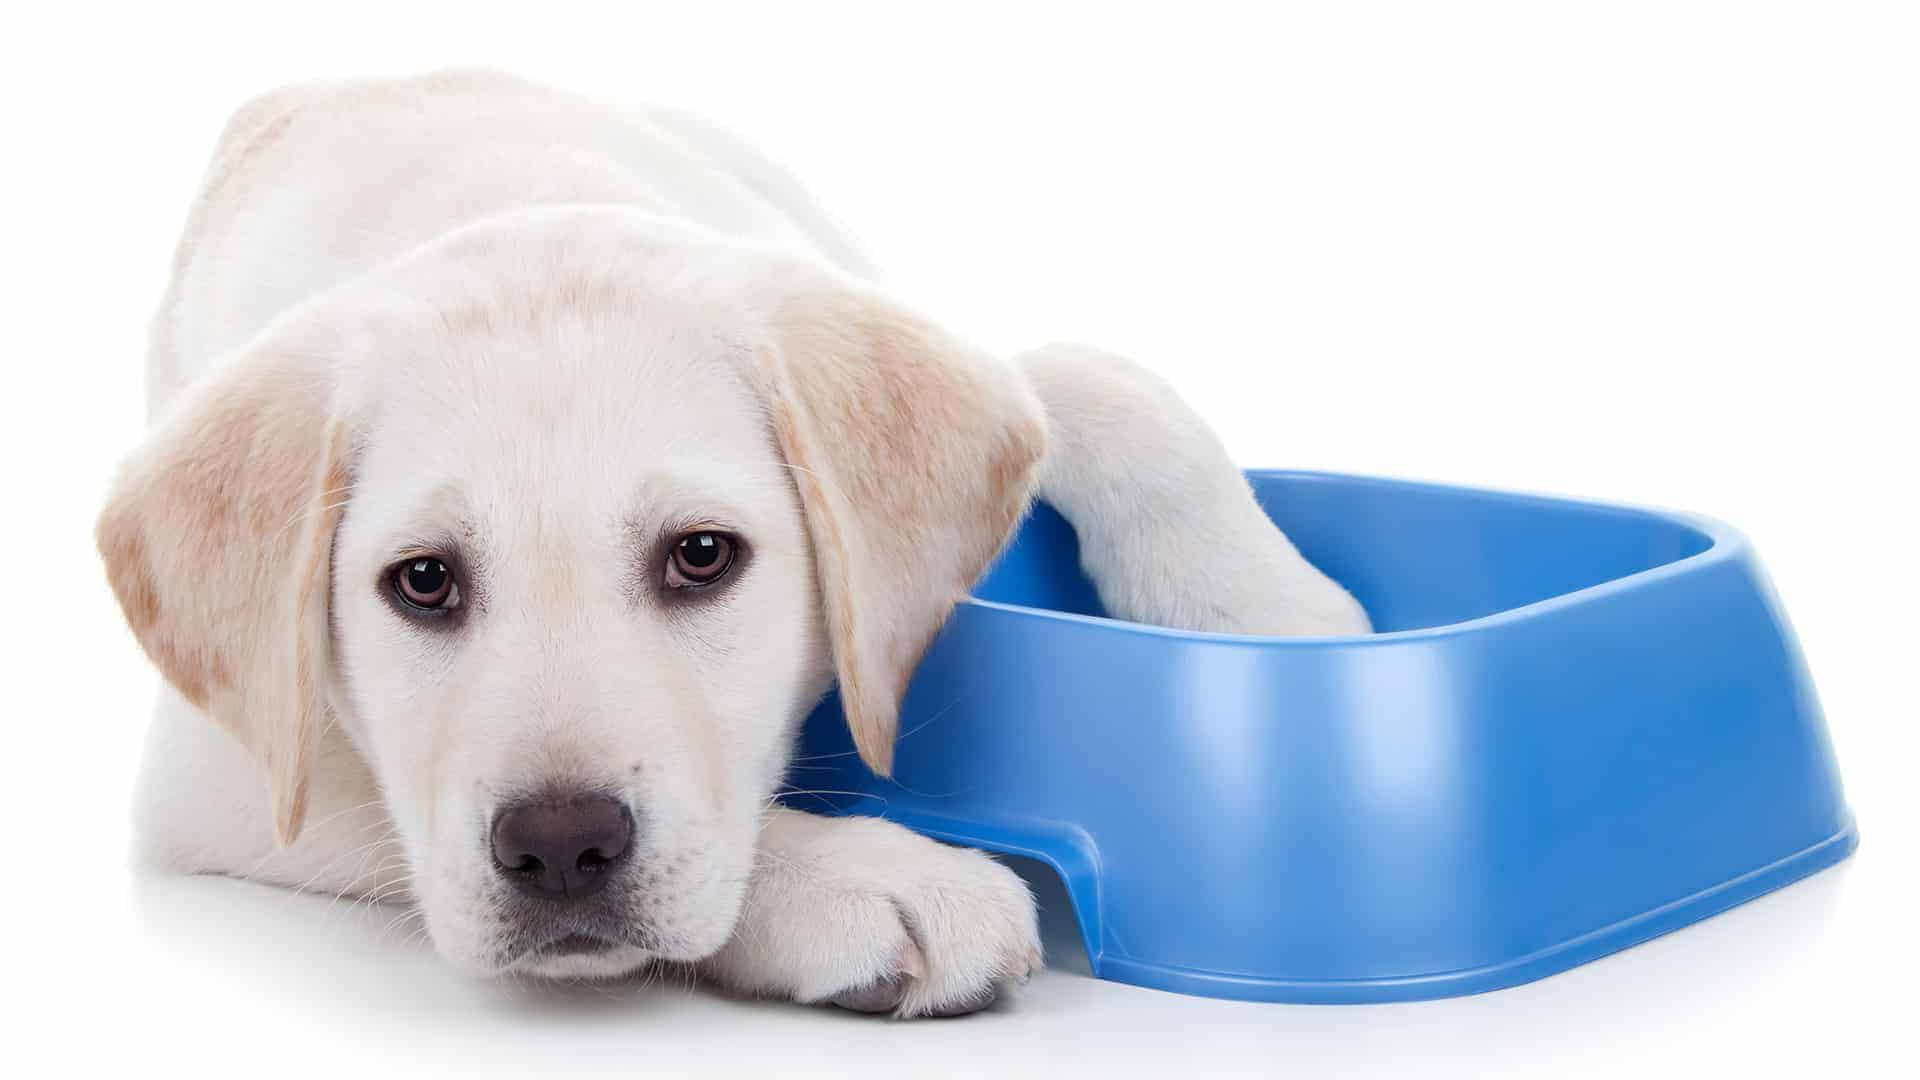 Diet Often Affects a Dog's Skin